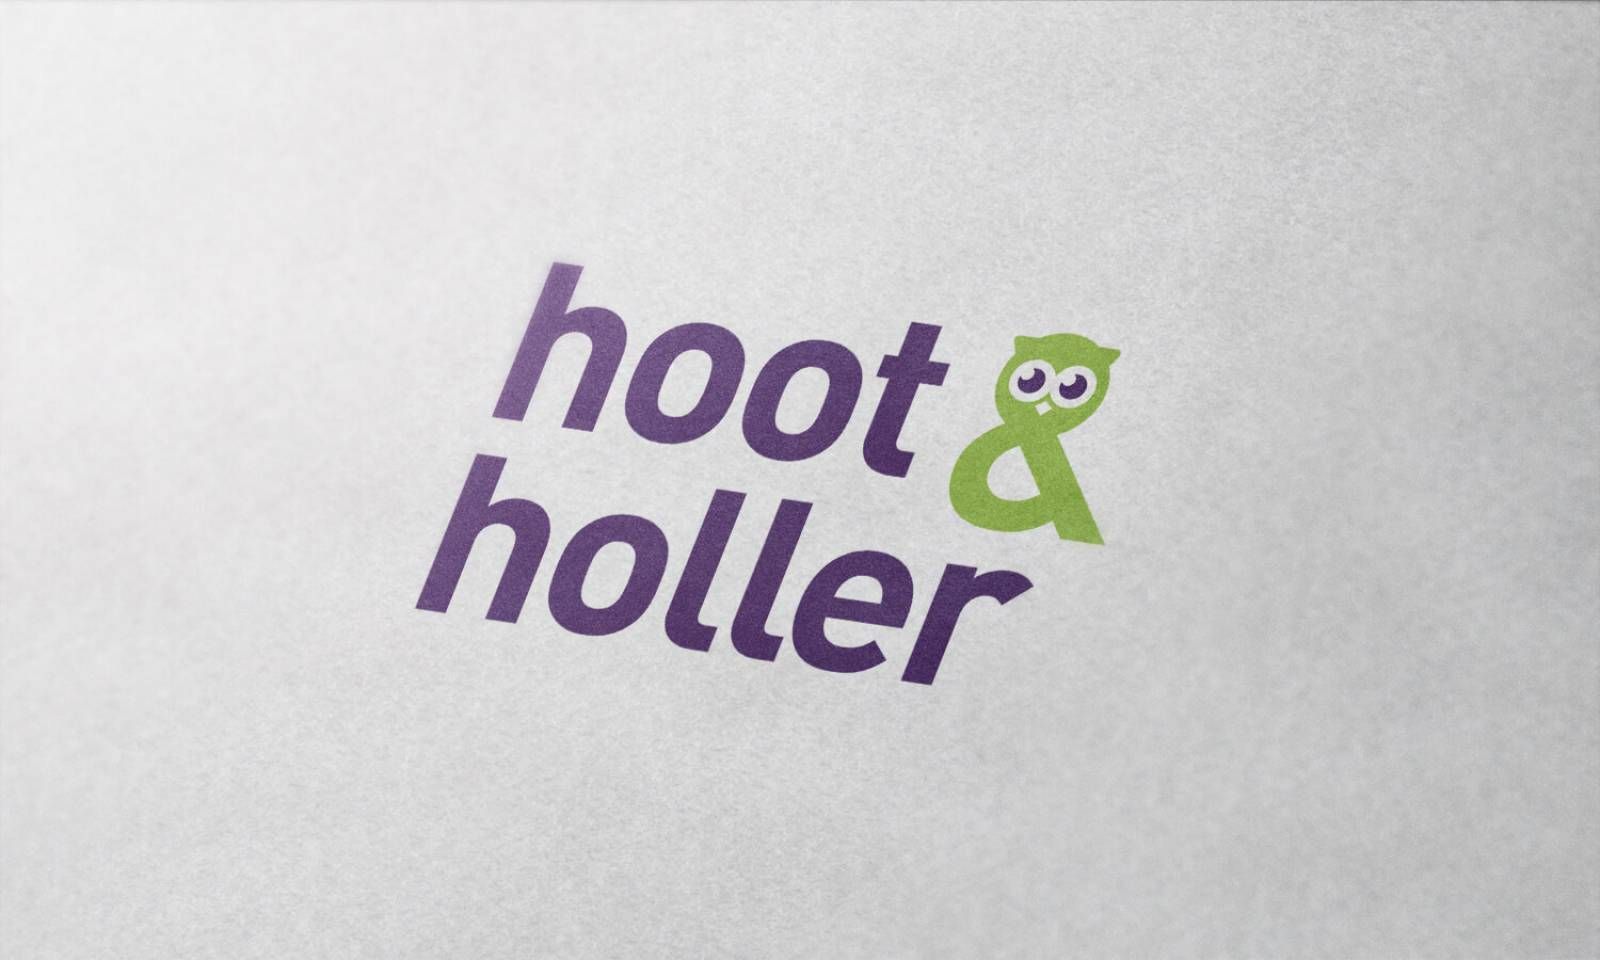 Hoot-logo-3-corporate-identity-agency-graphic-design-canterbury.jpg